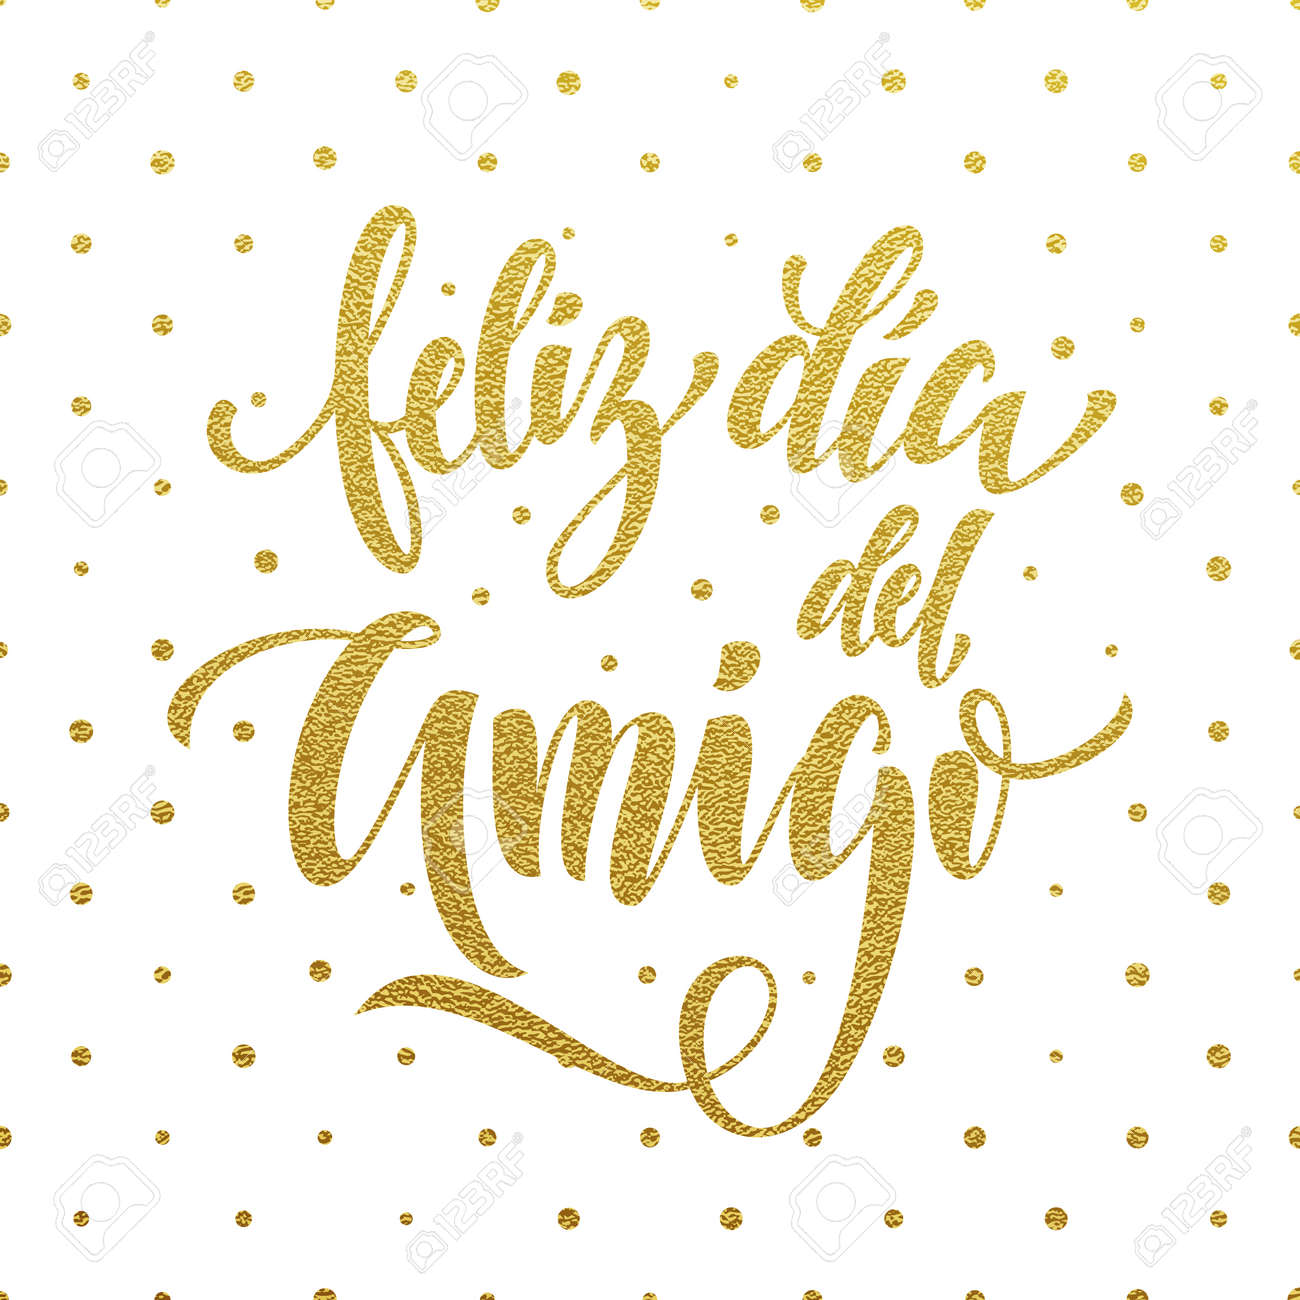 Feliz Dia Del Amigo Friendship Day Golden Lettering In Spanish For Friends Greeting Card